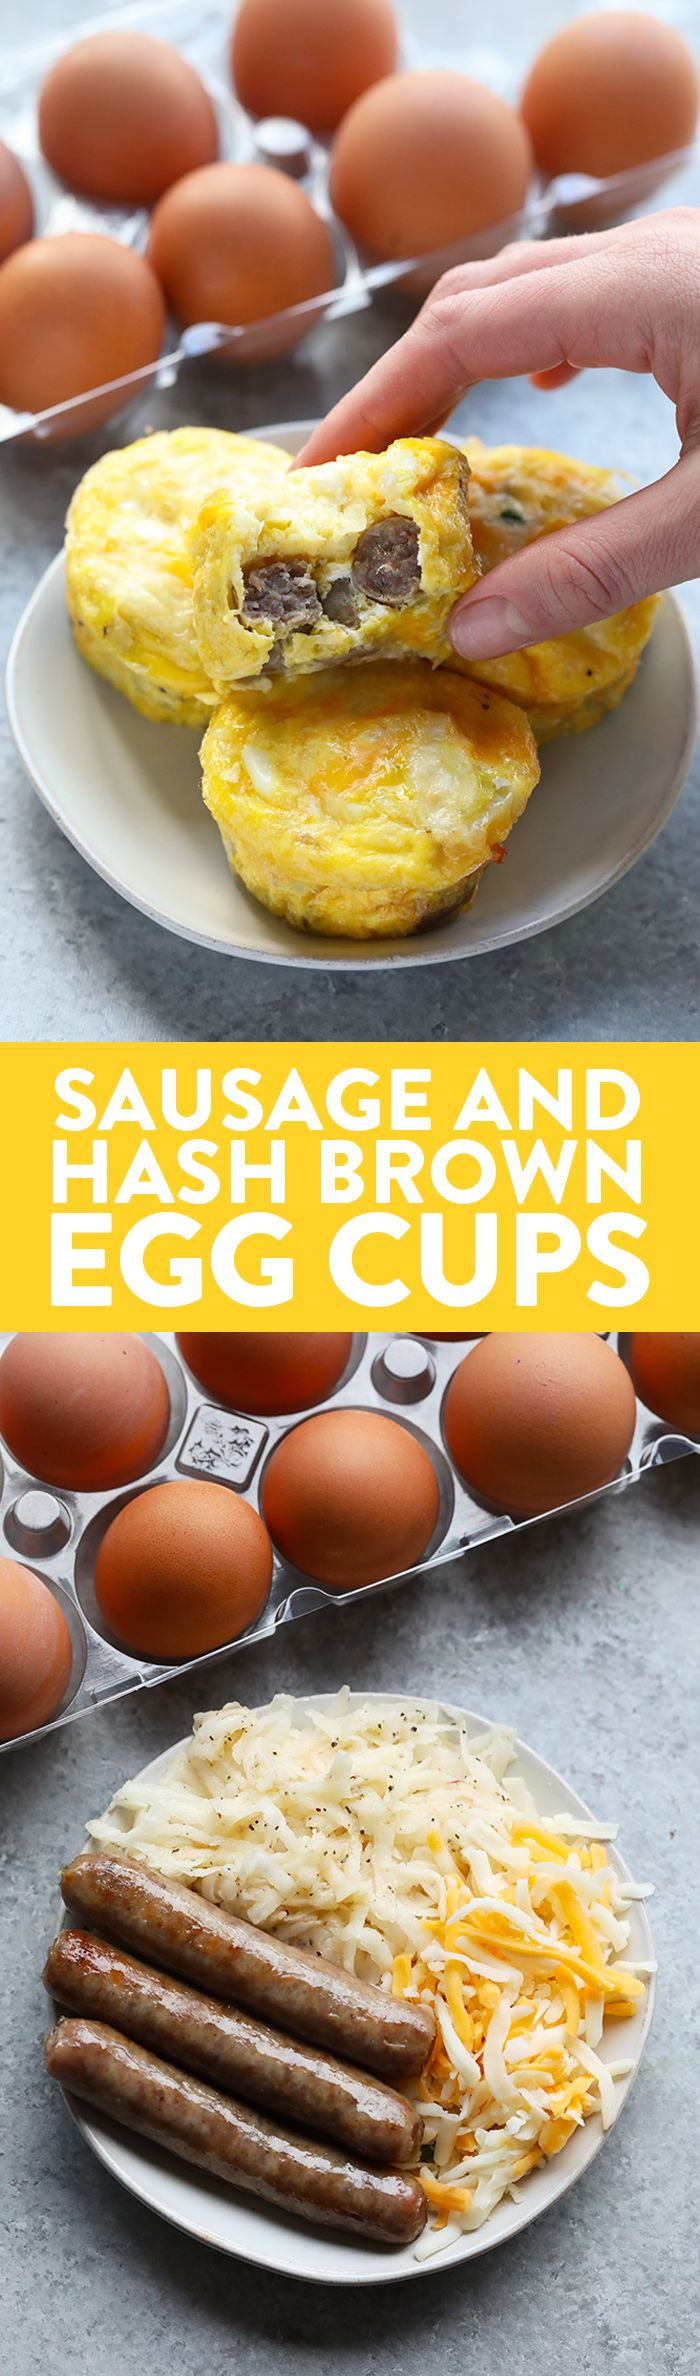 These All American Egg Cups are perfect for picky eaters. They're made with homemade hash browns, breakfast sausage, and cheese! Pro tip: try subbing out the hash browns for shredded sweet potato!